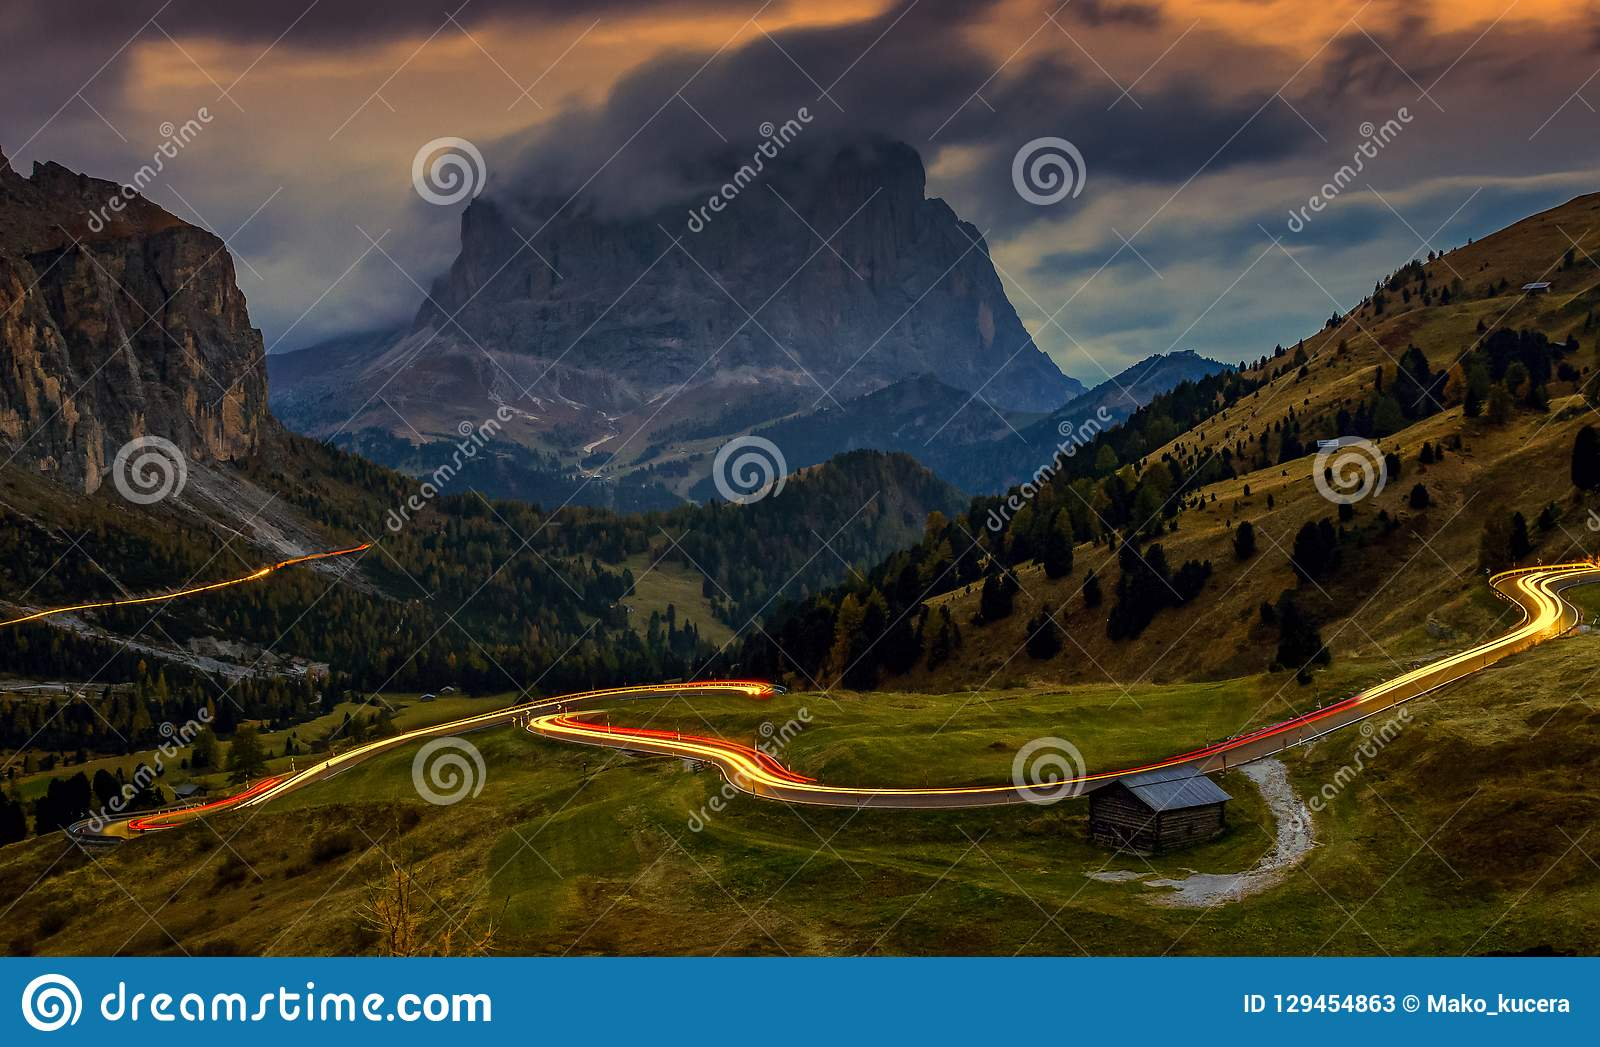 Landscape at Passo Gardena - blue hour after sunset, long exposure, Dolomites, Italy